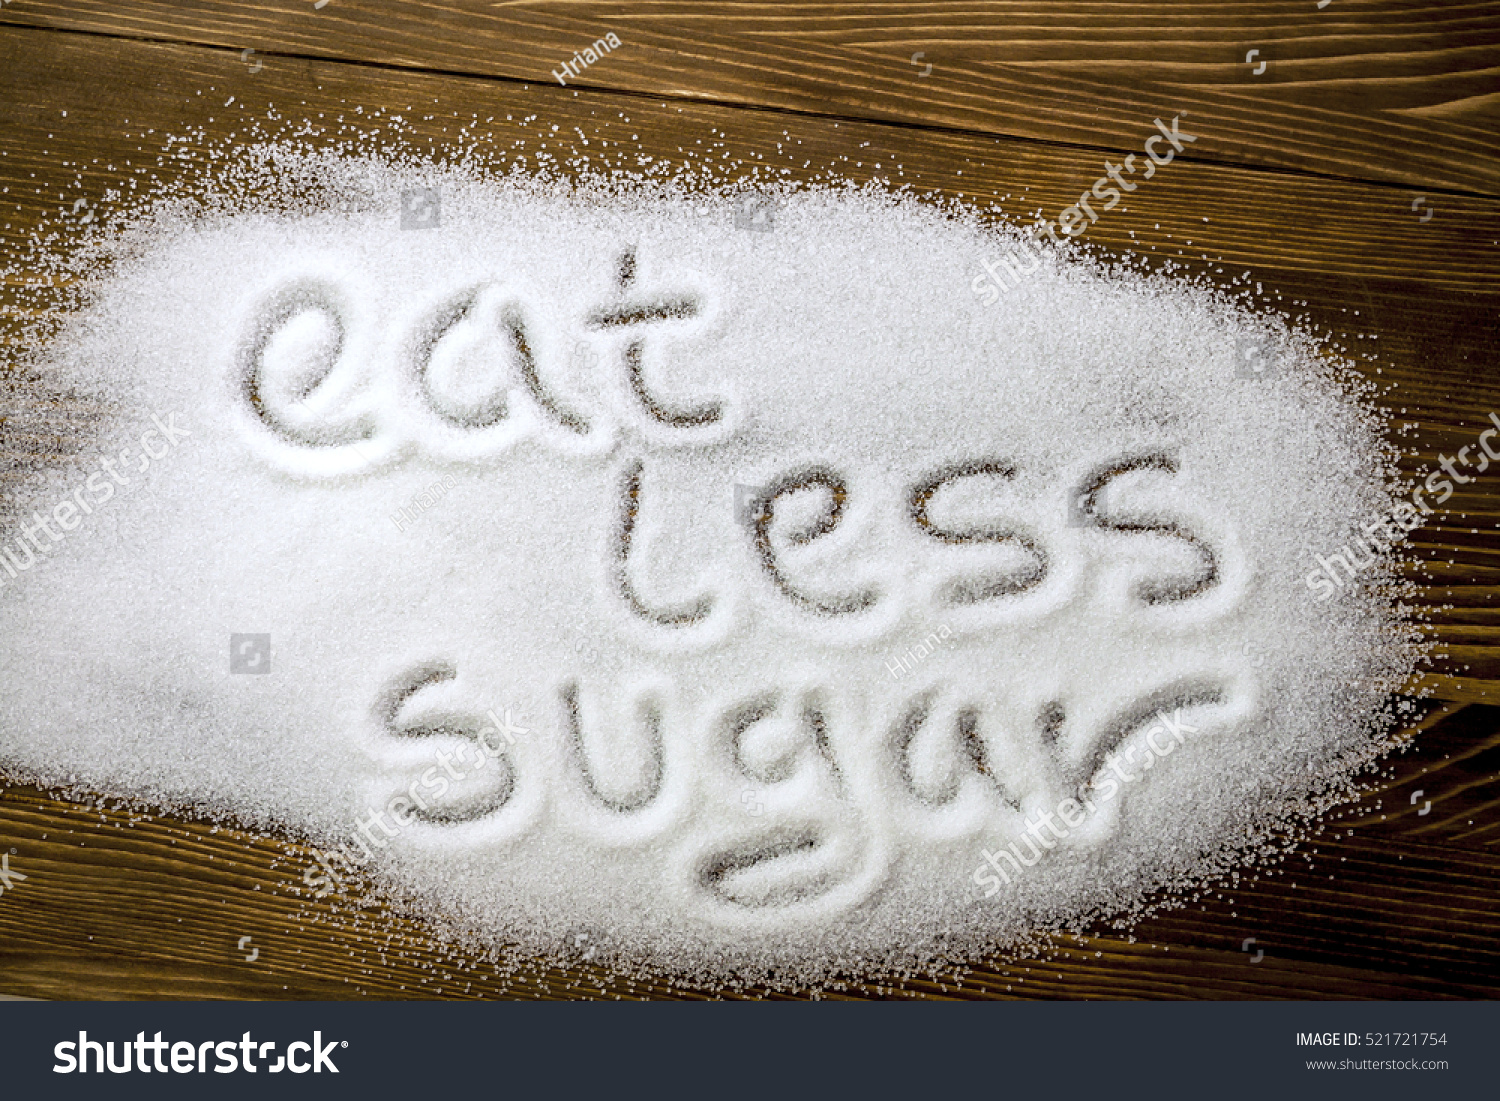 EAT LESS SUGAR written on brown wooden table Health concept